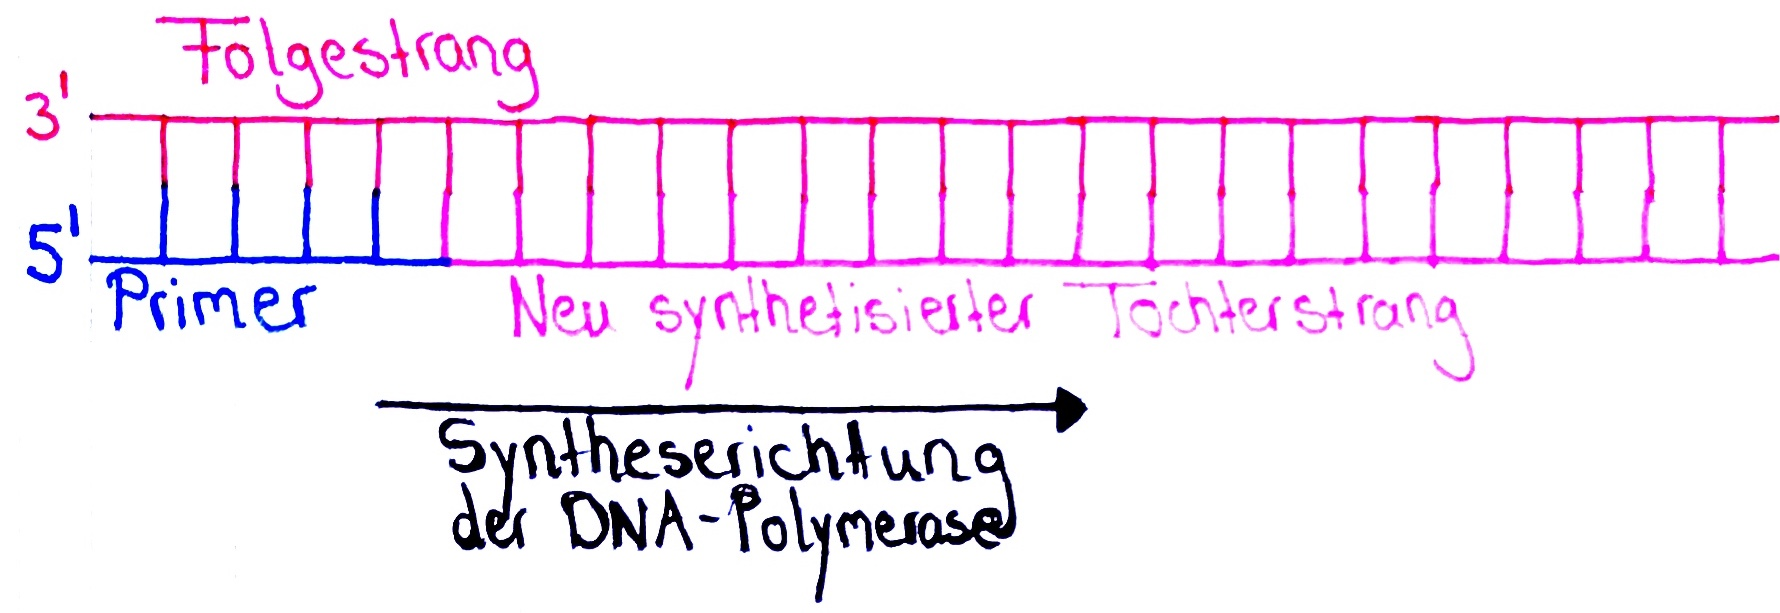 DNA Replikation - DNA-Verlust an den Telomeren der Tochterstränge (Terminationsphase) - Biologie Passion Podcast 1 von 2